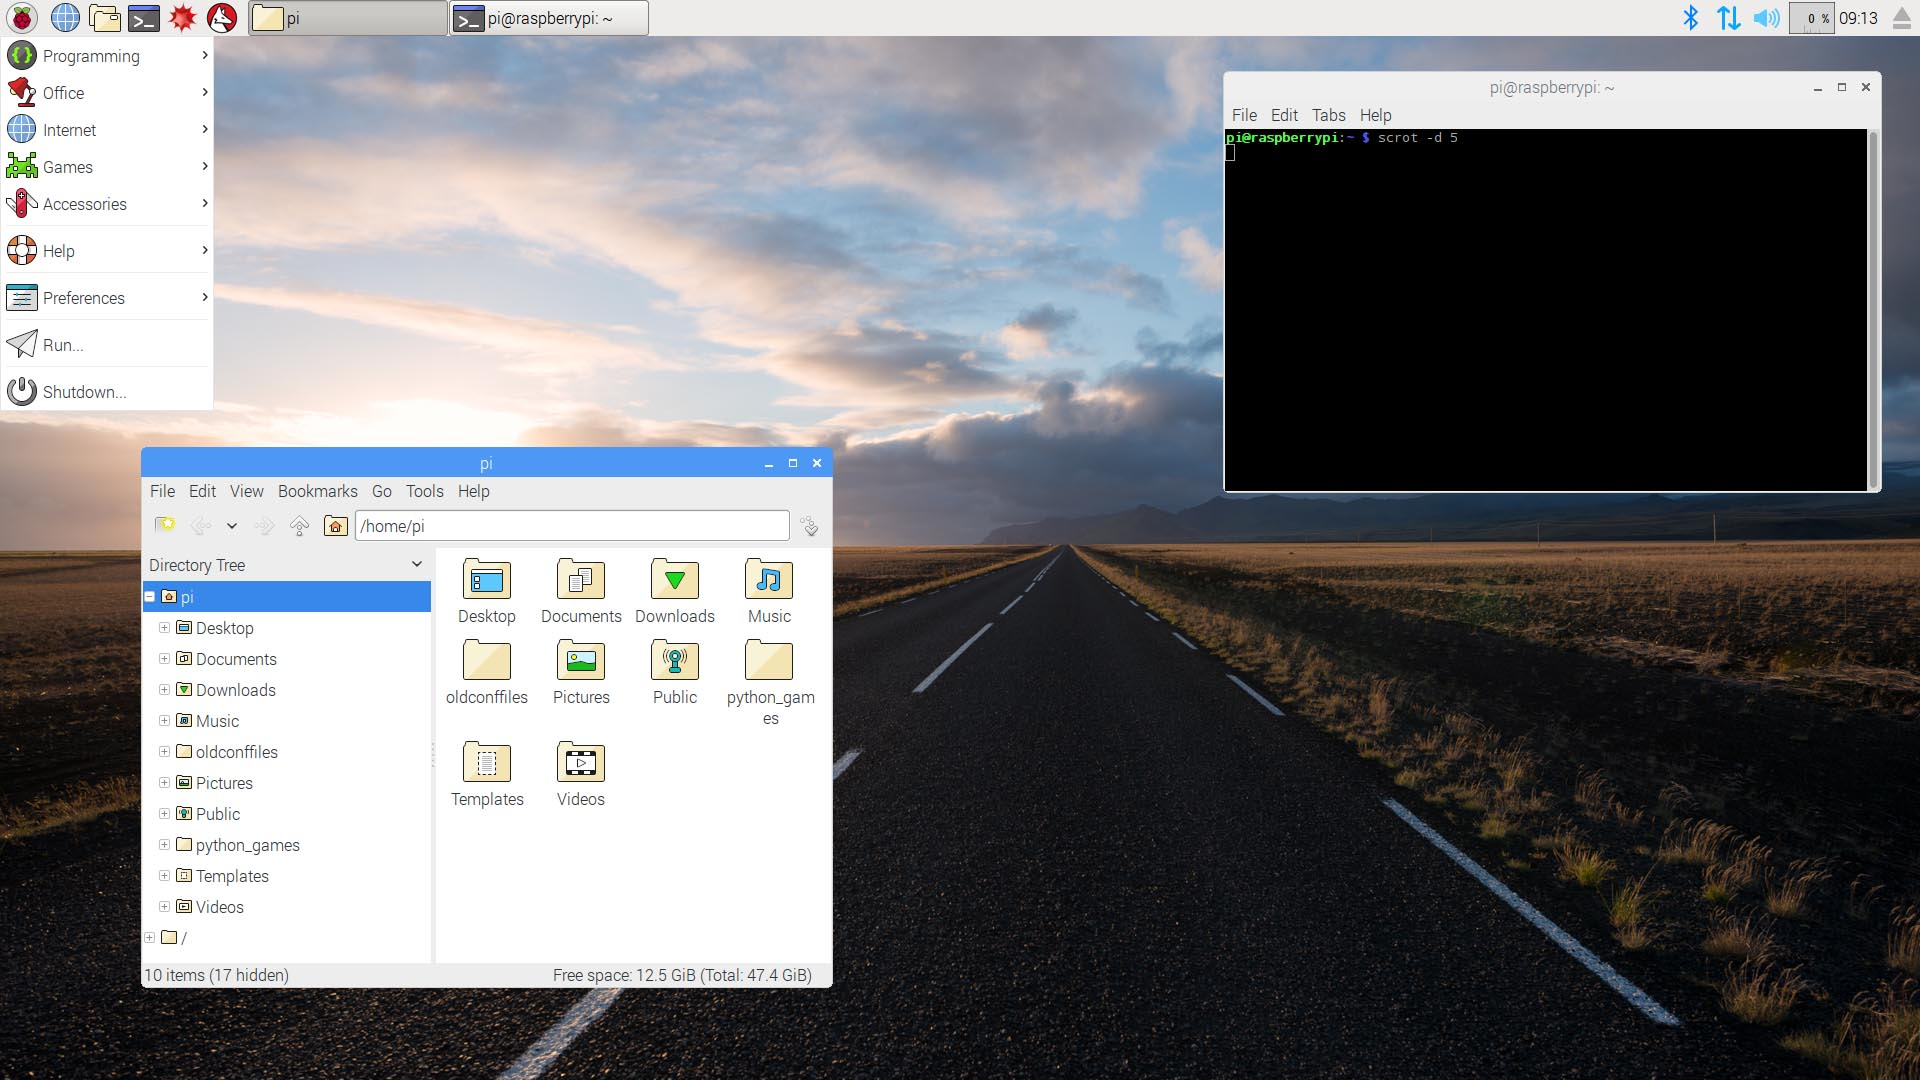 Screenshot of clean Raspbian desktop